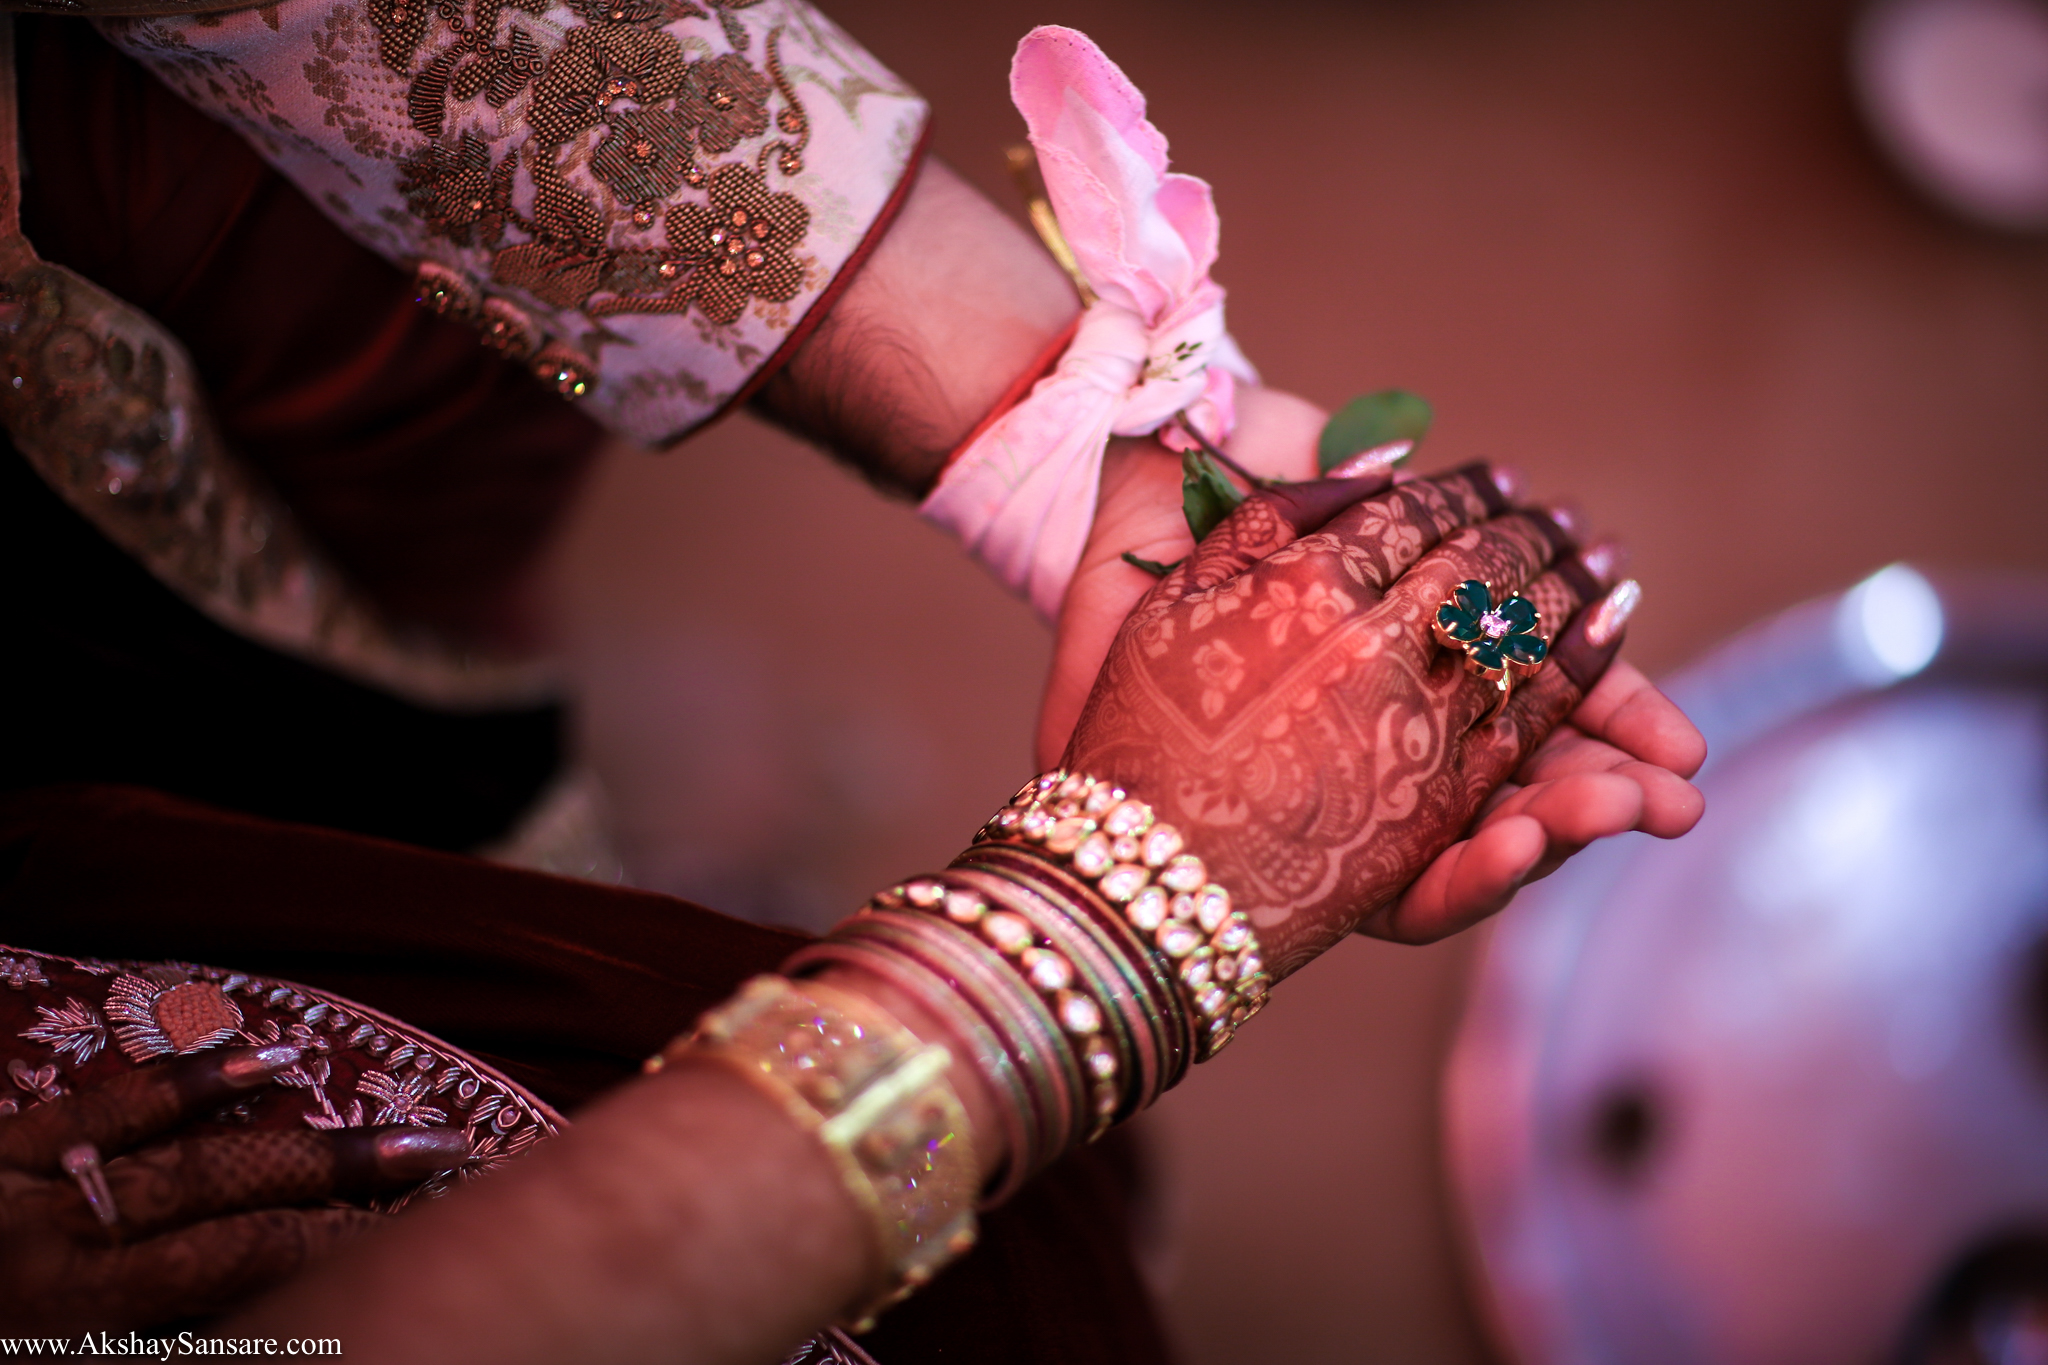 Nupur & Rohan wedding Akshay Sansare Photography best wedding photographer in mumbai India Candid(49).jpg